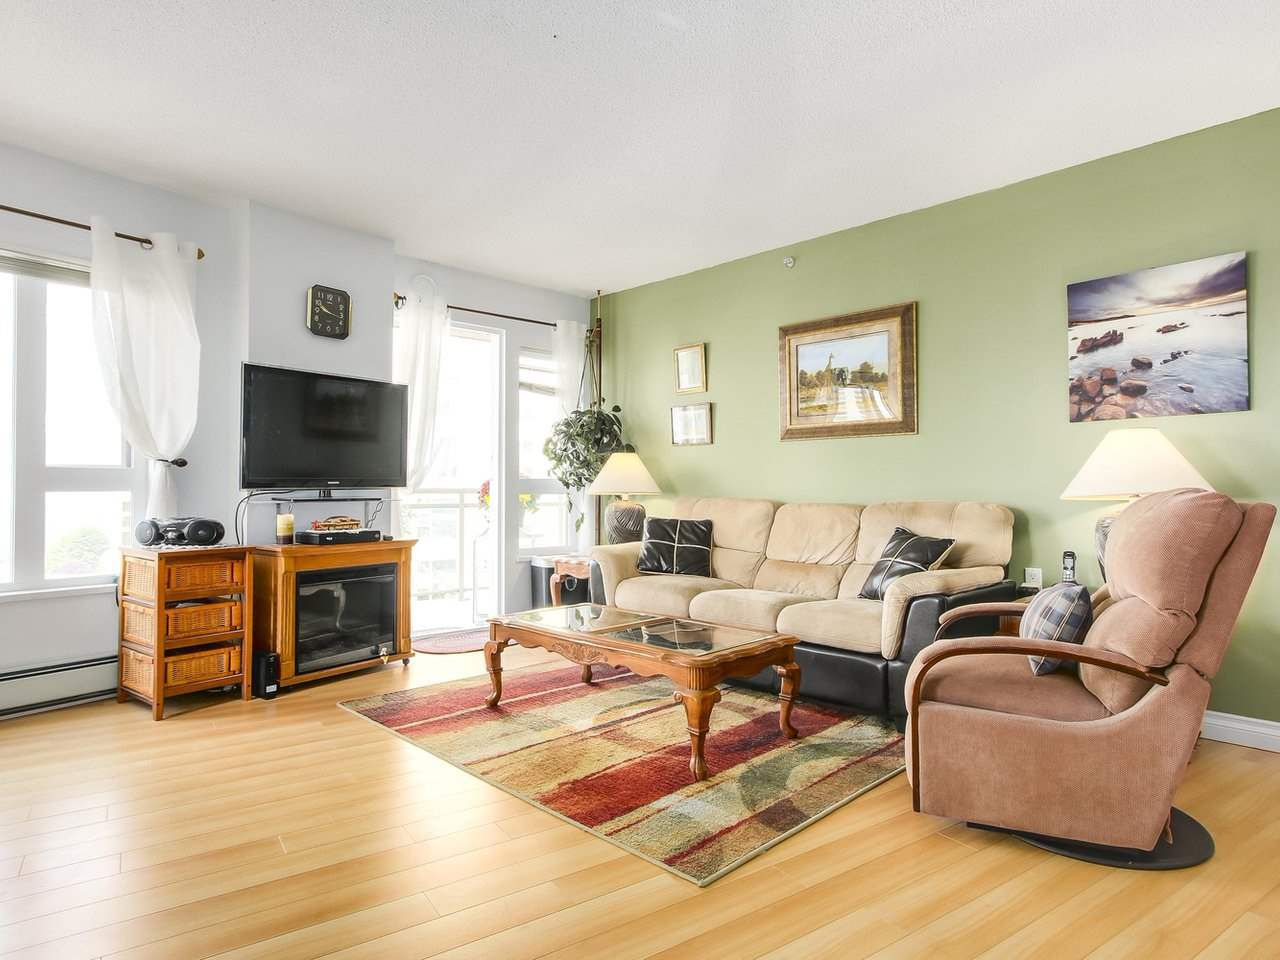 """Photo 7: Photos: 801 121 W 15TH Street in North Vancouver: Central Lonsdale Condo for sale in """"ALEGRIA"""" : MLS®# R2196958"""